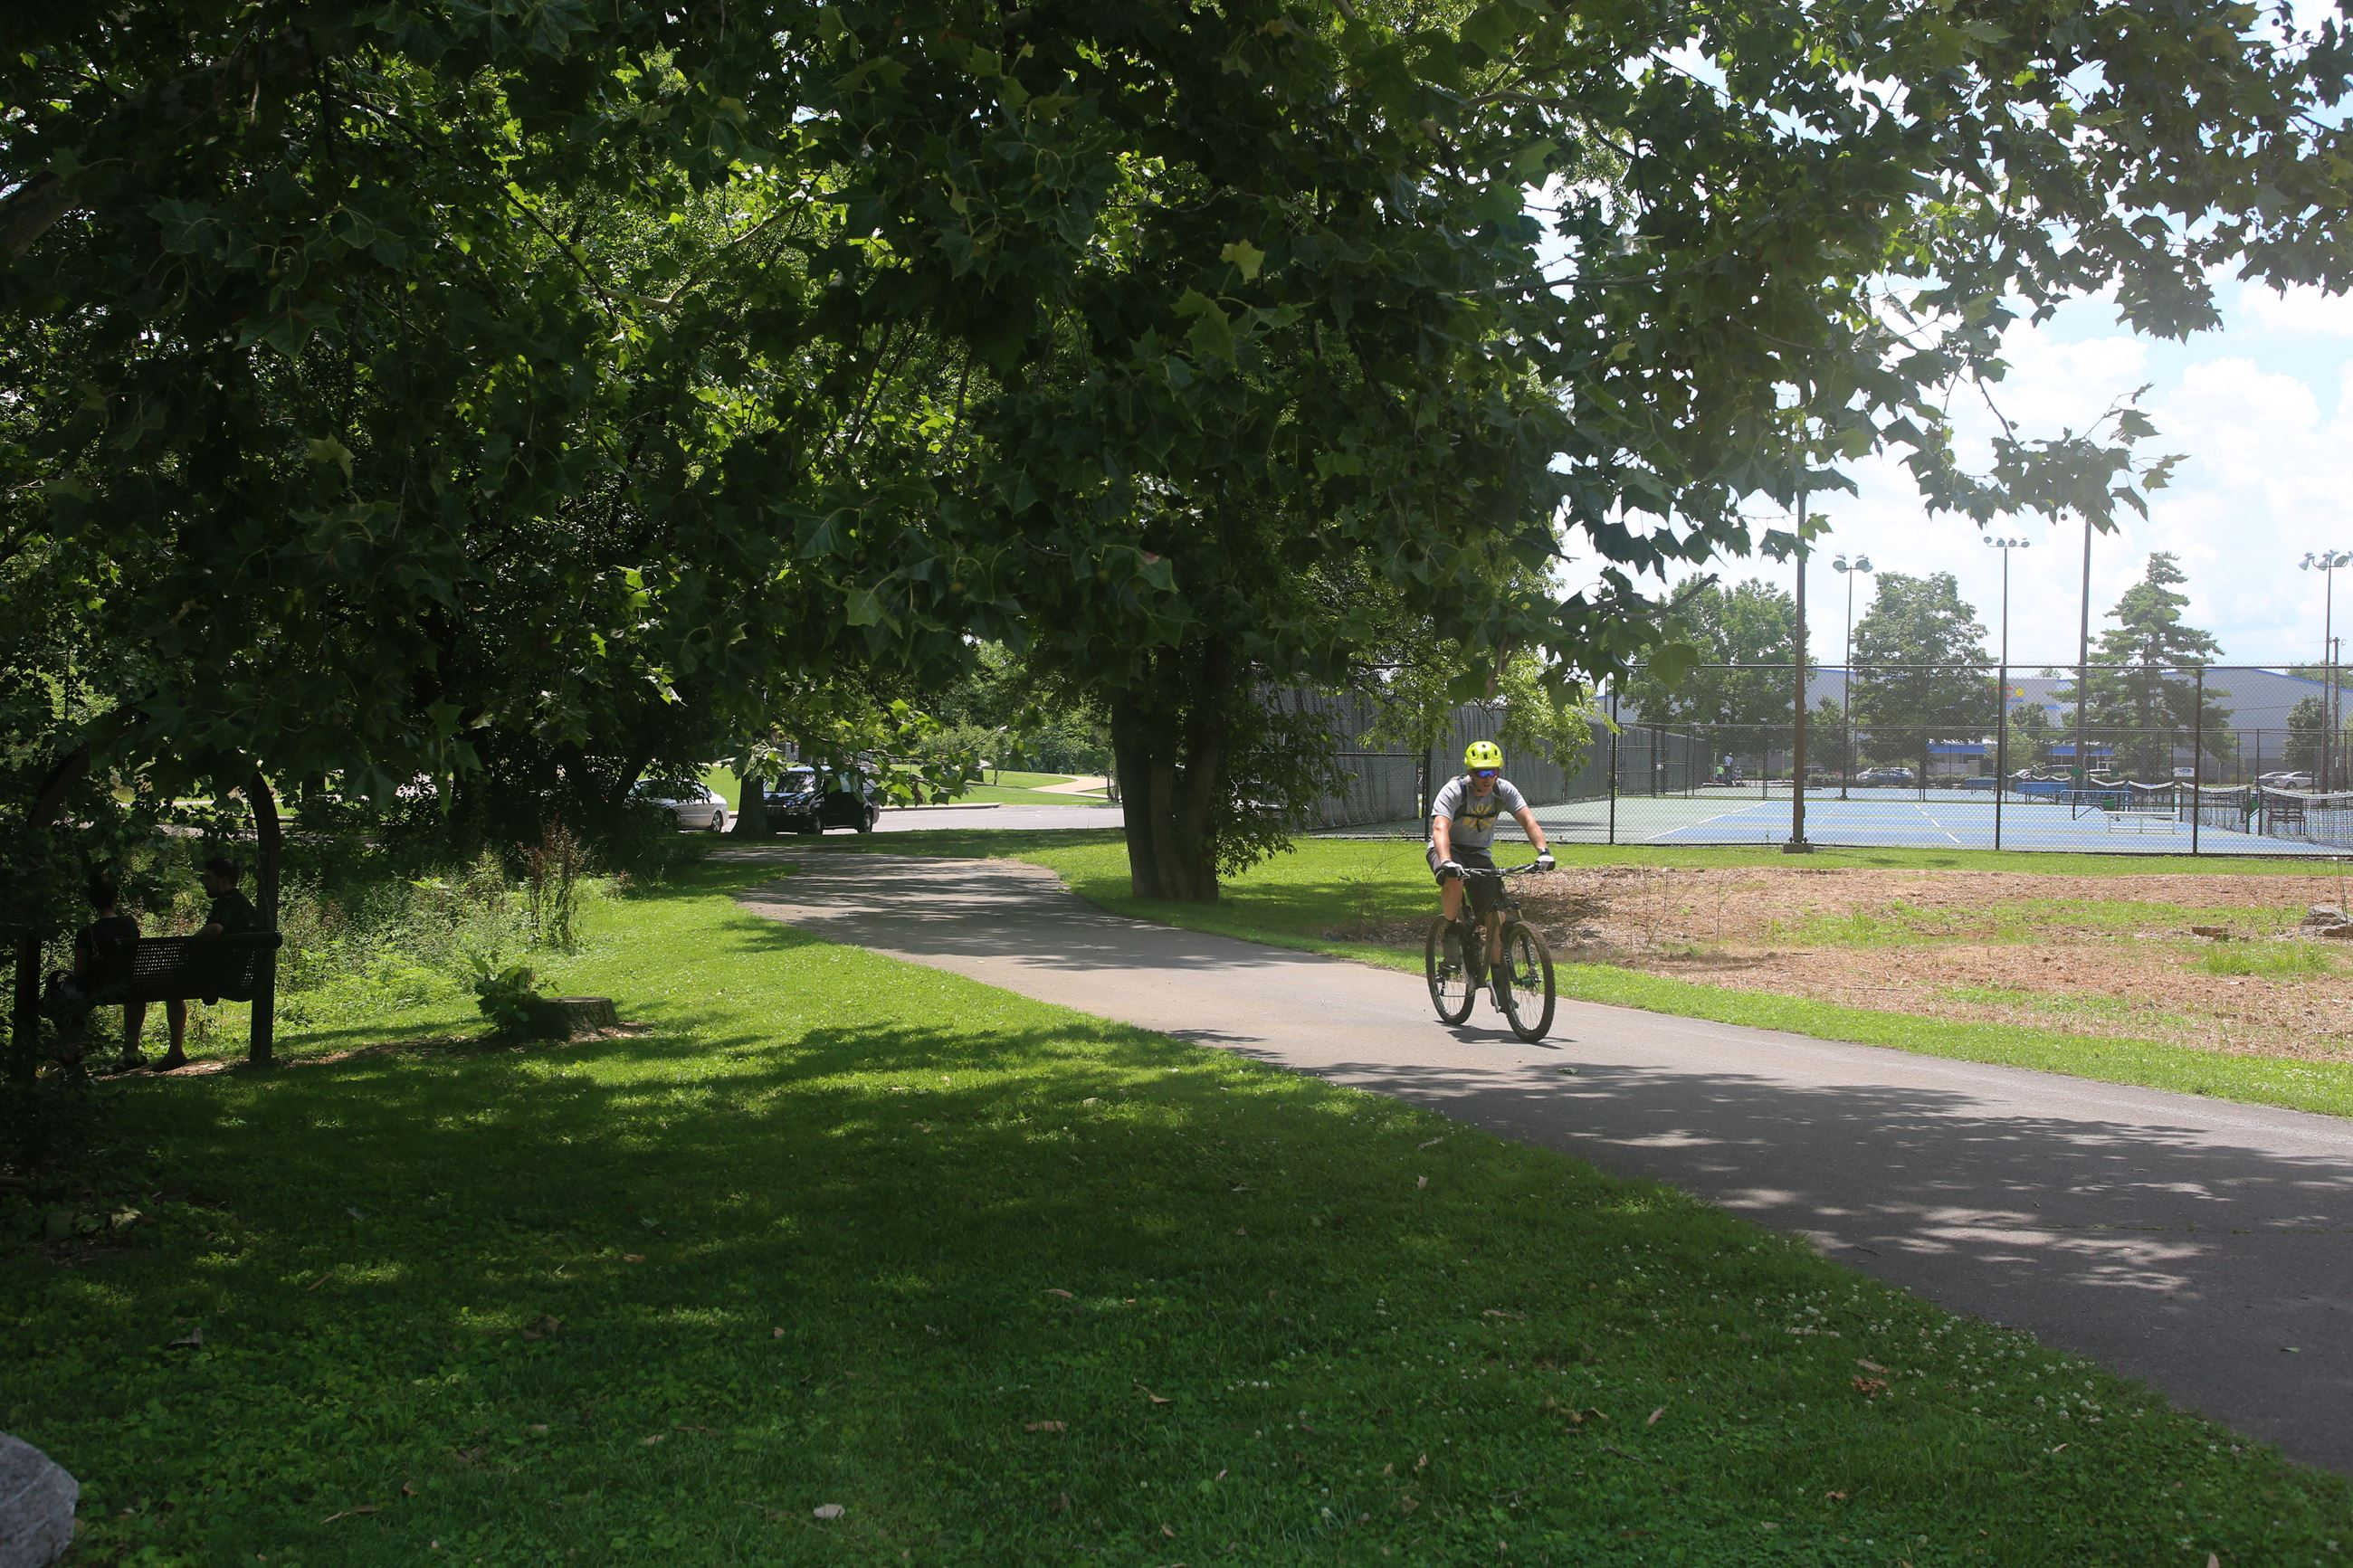 Bicyclist riding on path in dappled shade, trees, tilled area, and tennis courts in background